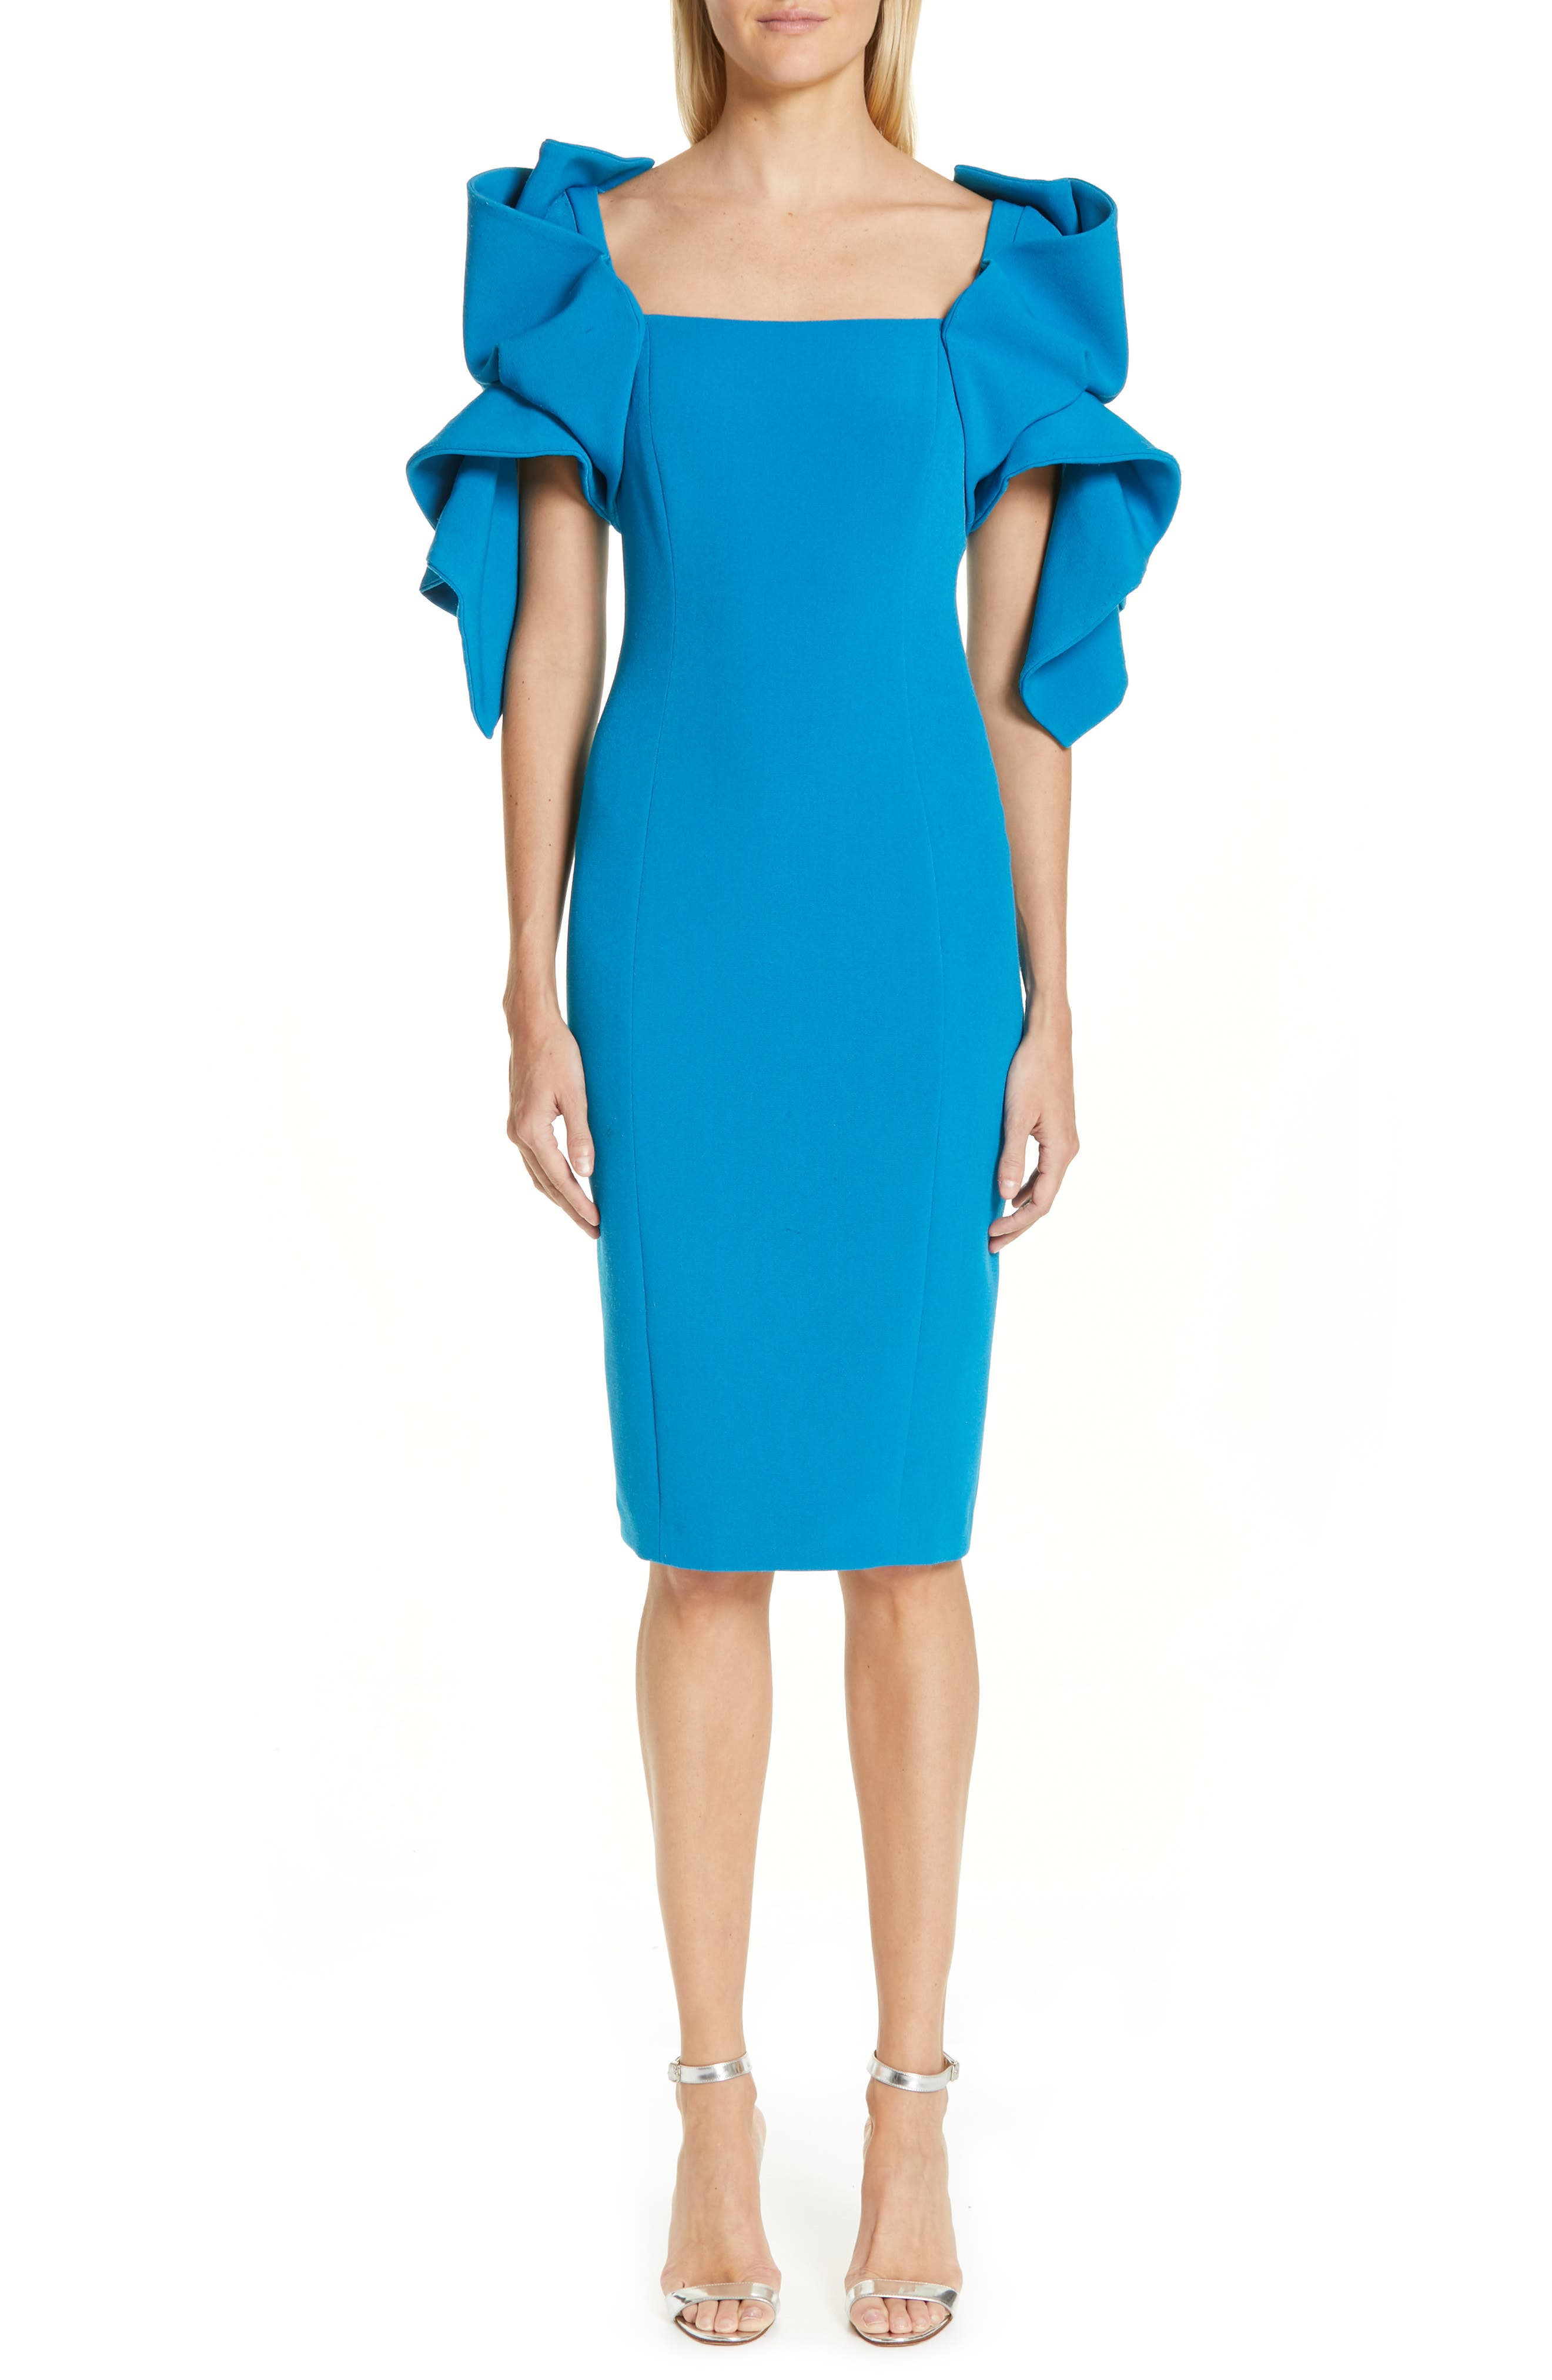 BADGLEY MISCHKA COLLECTION,                             Origami Sleeve Cocktail Dress,                             Main thumbnail 1, color,                             BRIGHT AQUA